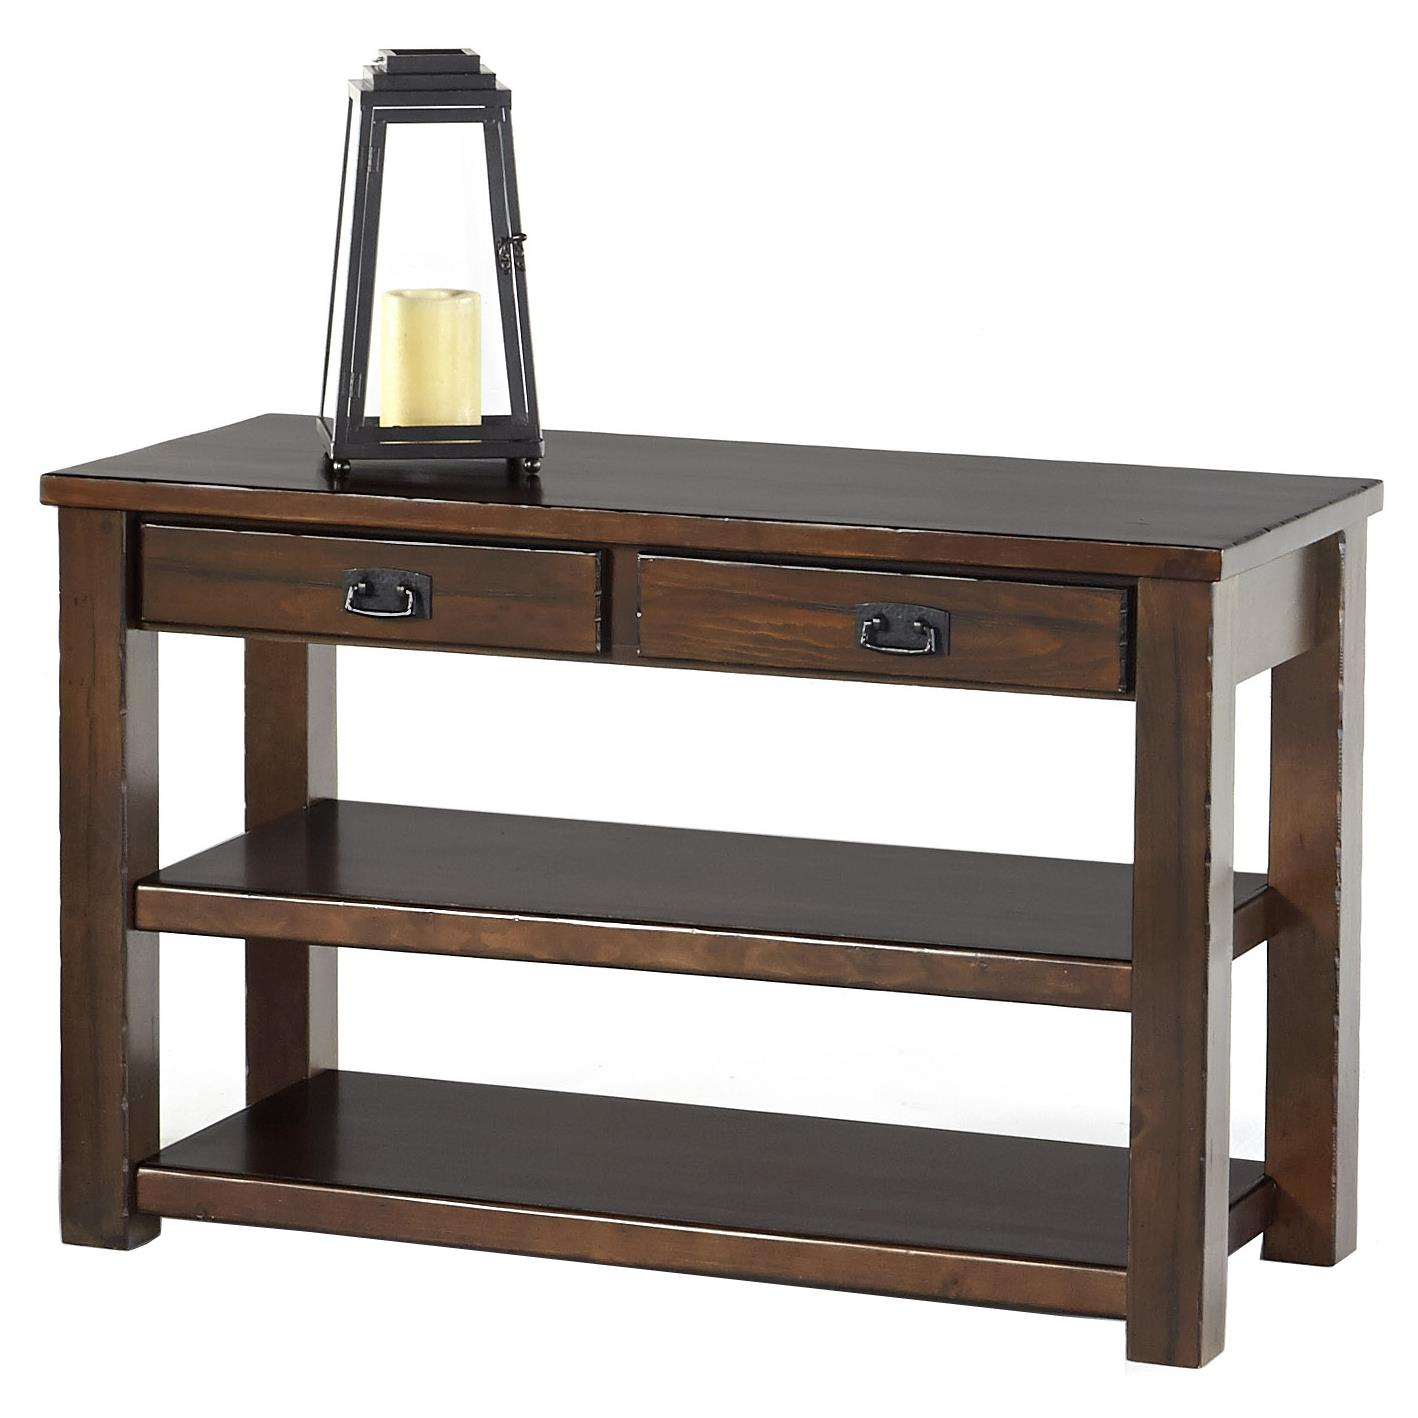 Progressive furniture trestlewood sofa console table with for Sofa table rules